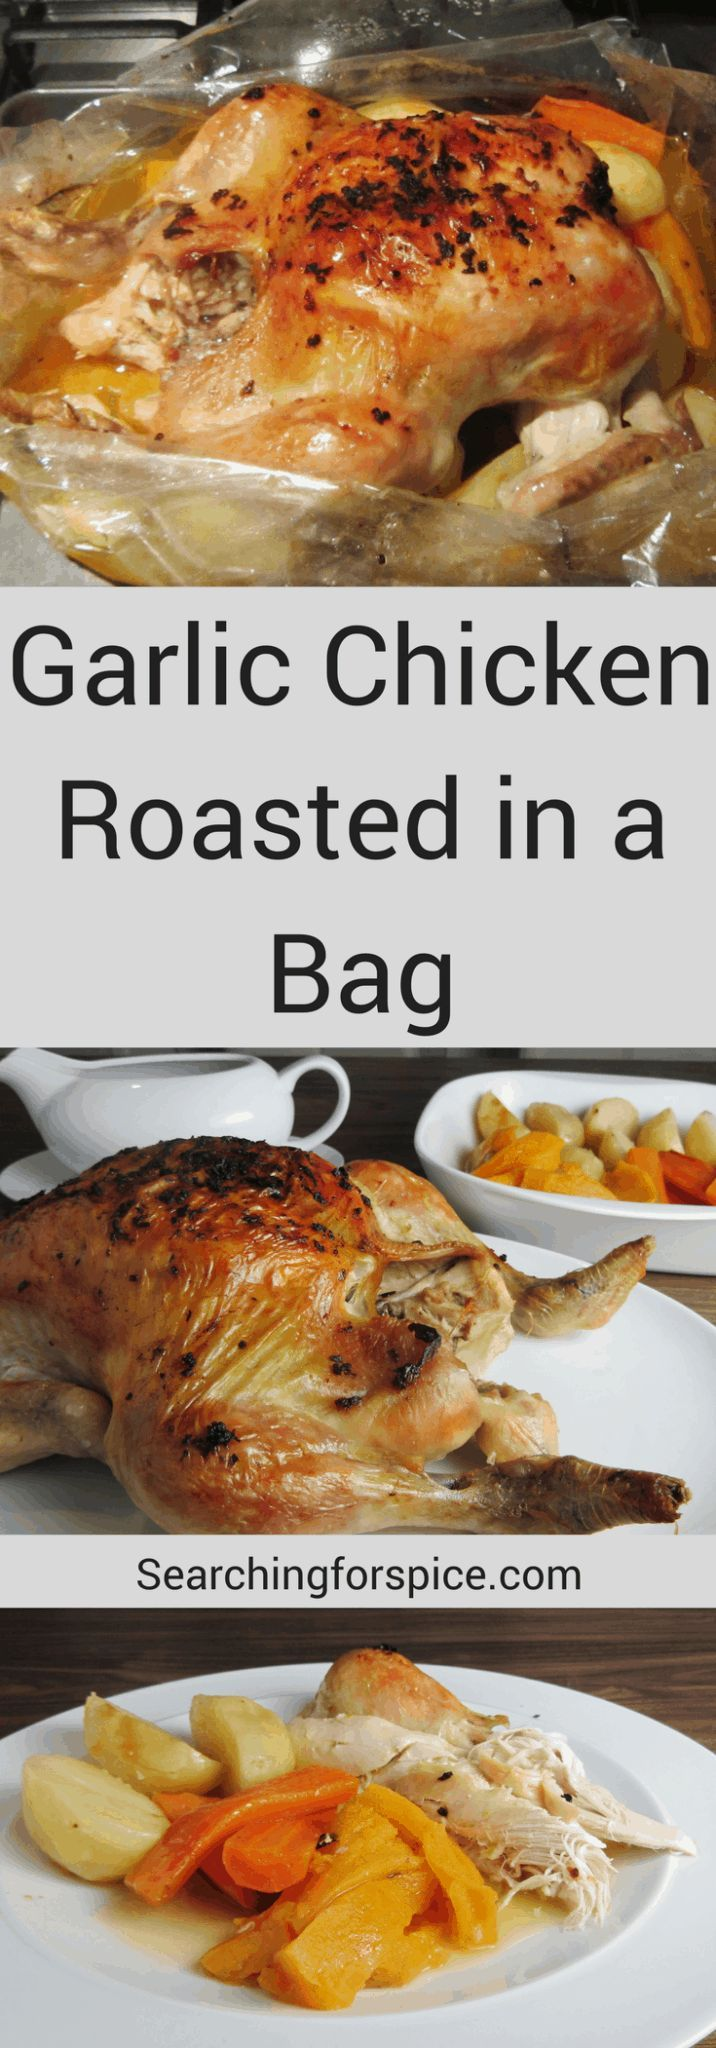 Have you tried garlic chicken roasted in a bag? The bag keeps it so deliciously ... Have you tried garlic chicken roasted in a bag? The bag keeps it so deliciously ... -